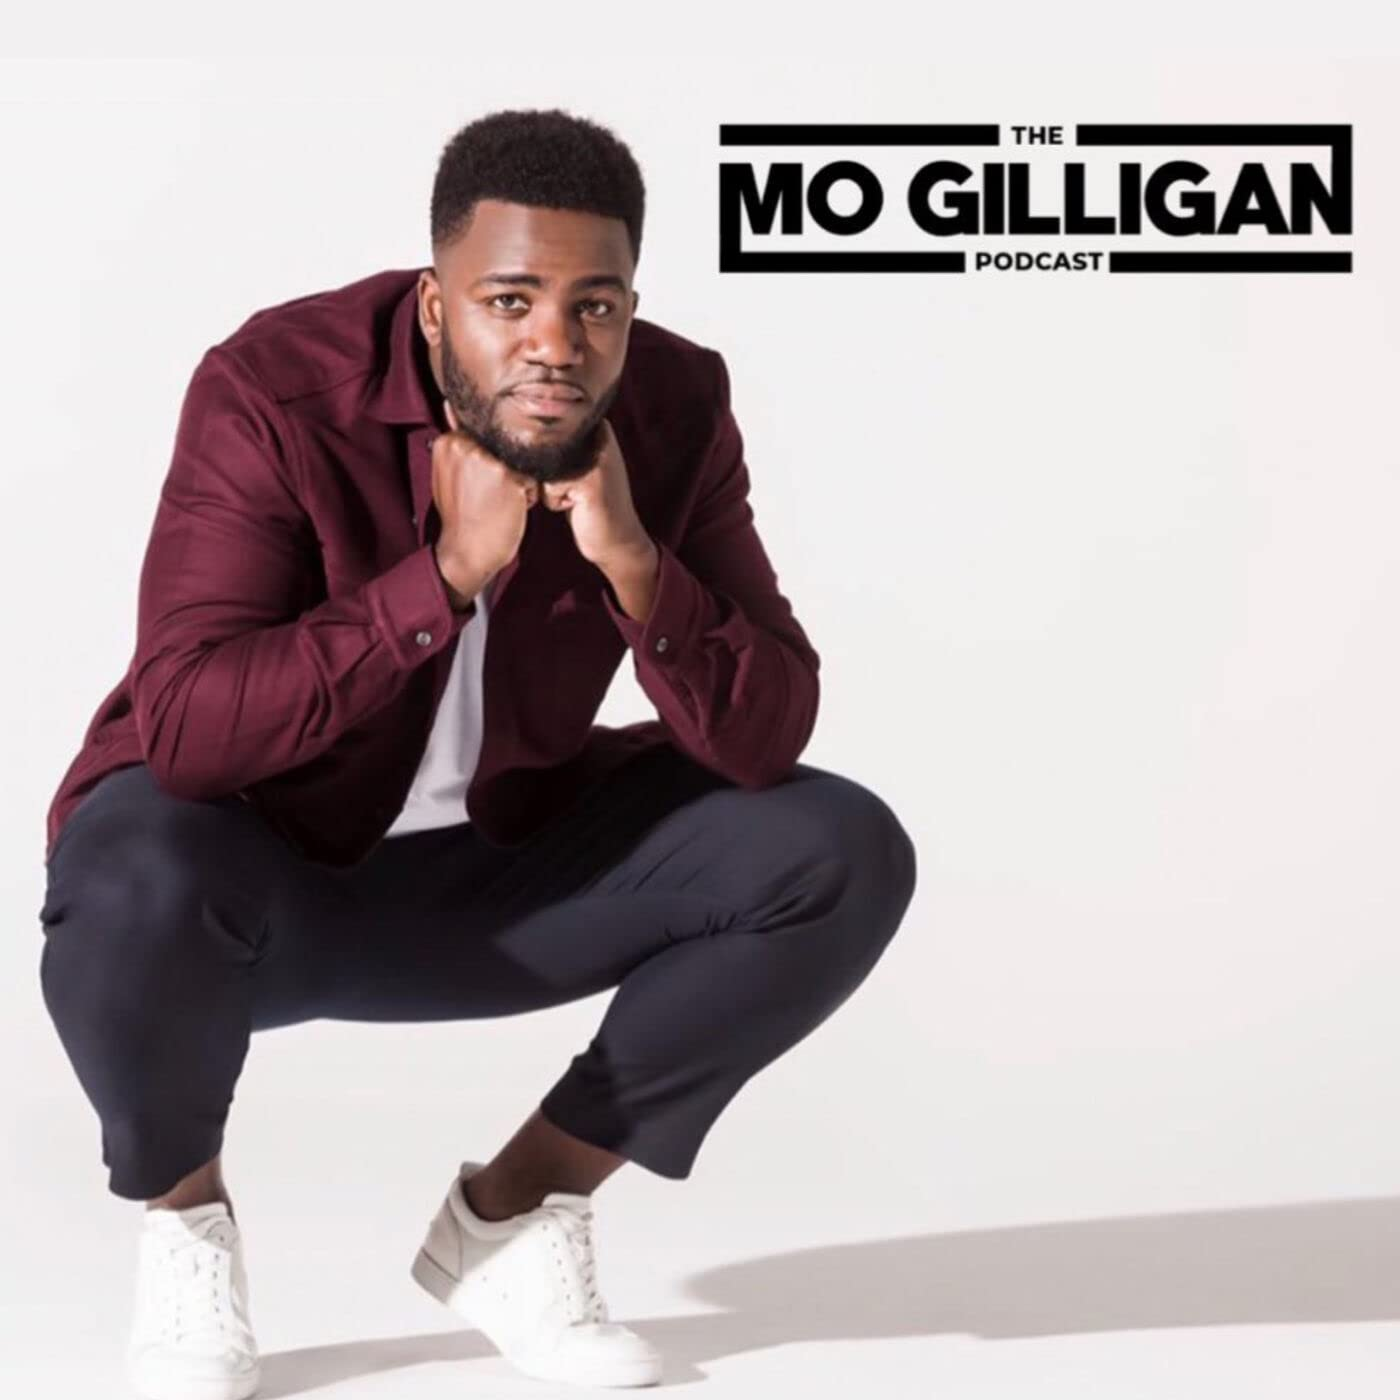 The Mo Gilligan Podcast